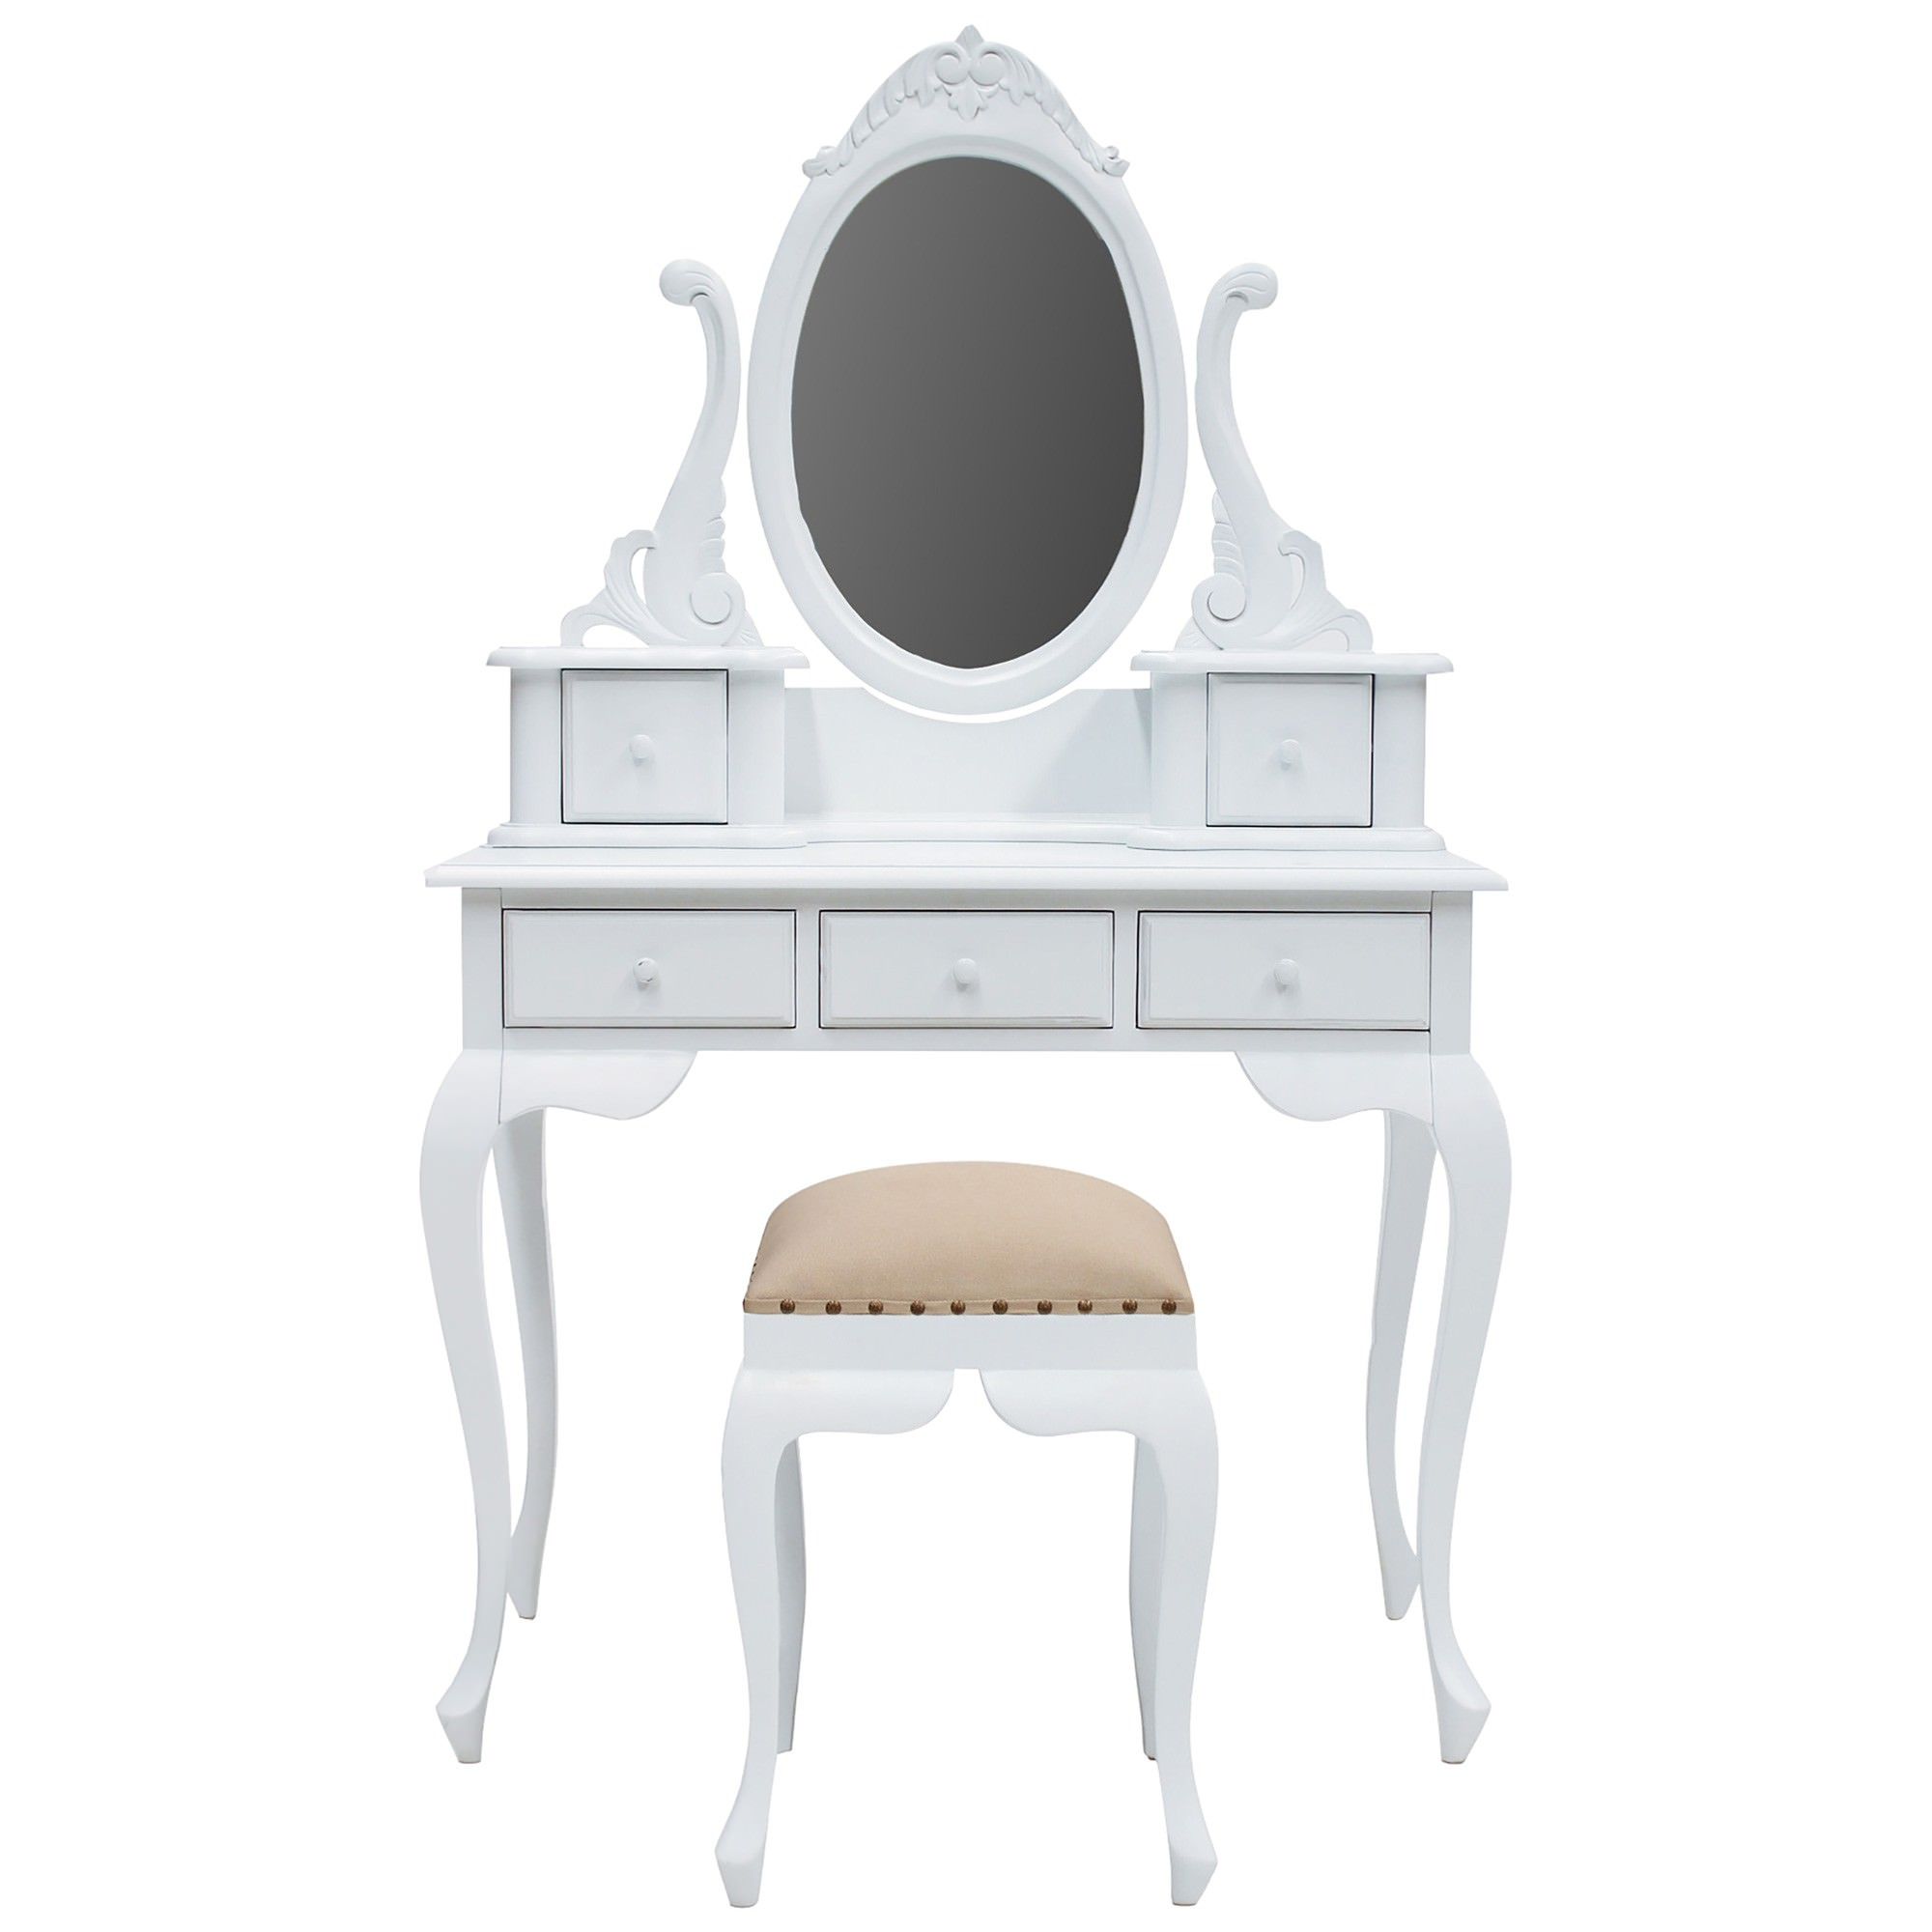 Champier Hand Crafted Mahogany Dressing Table with Stool, White